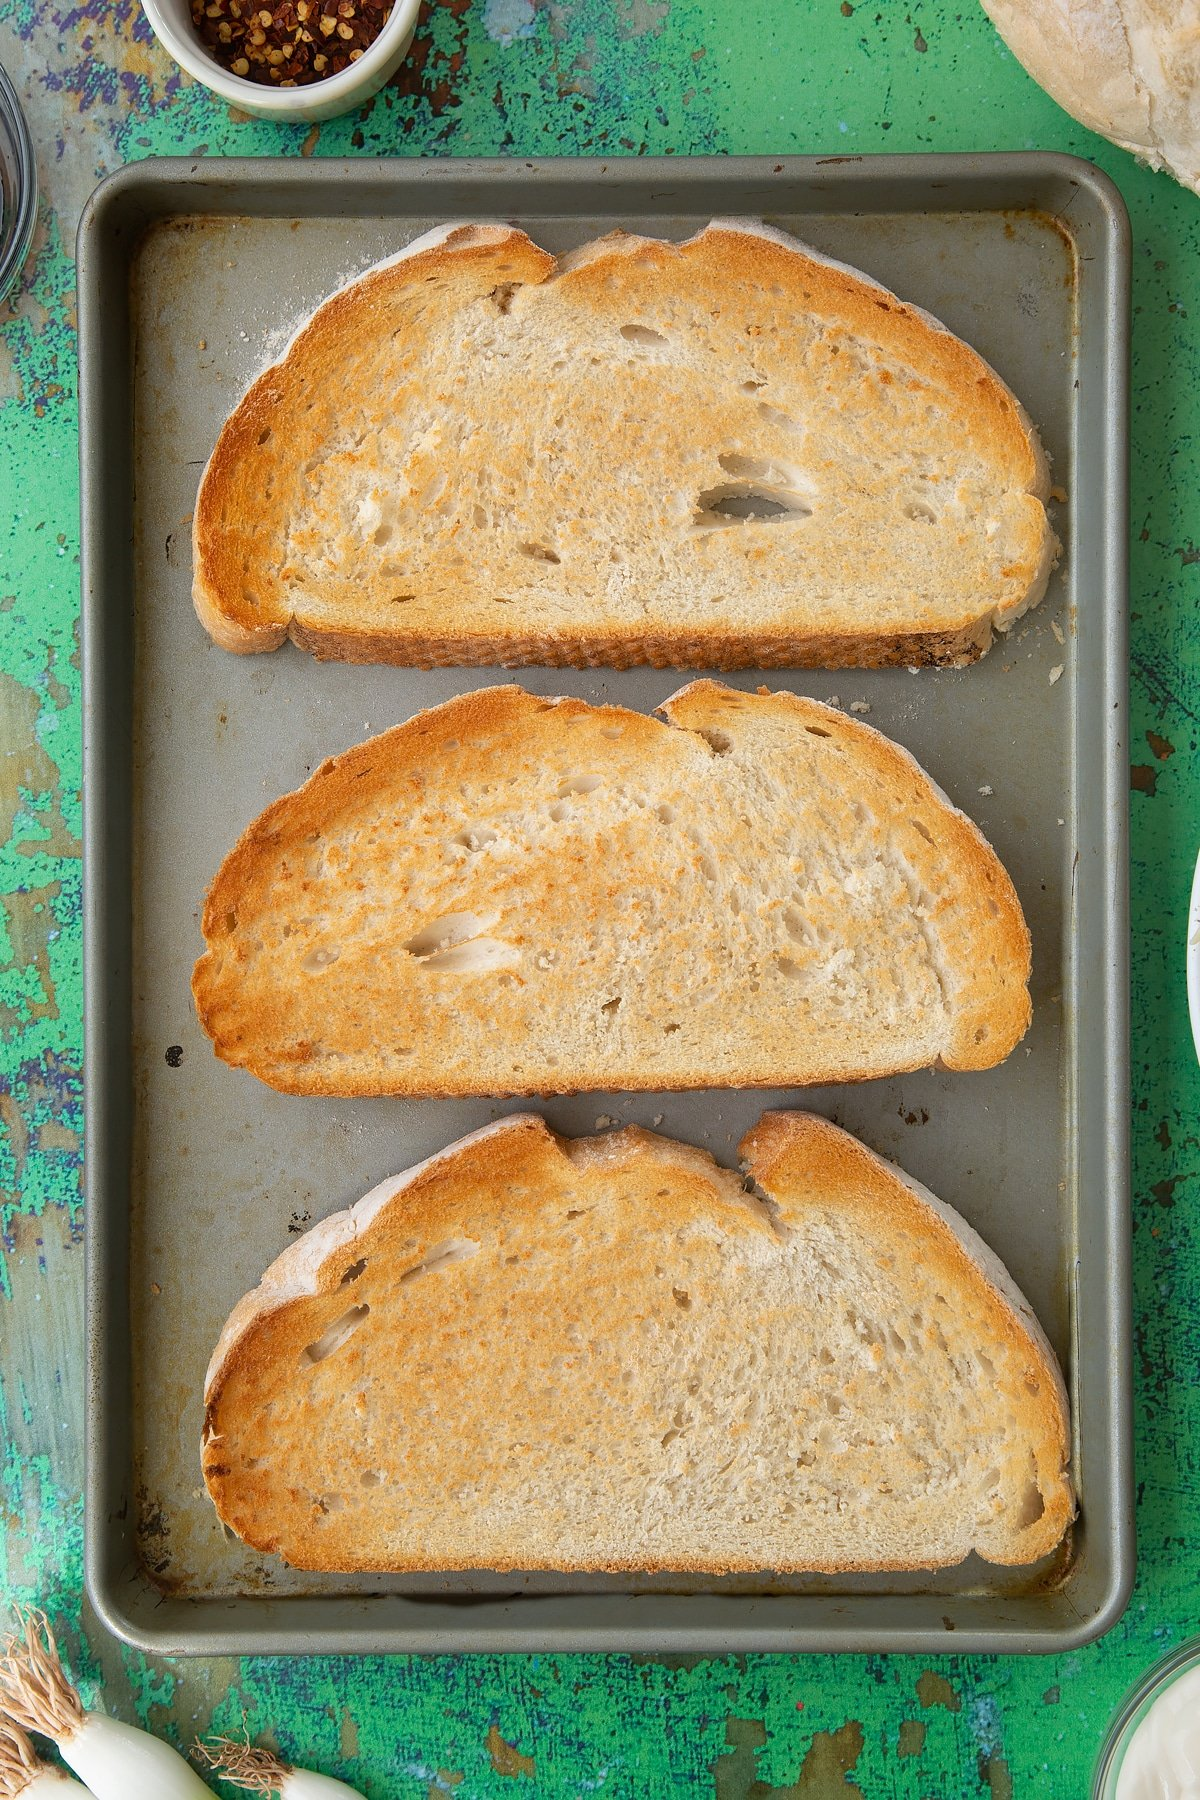 Three large slices of toast on a baking tray. Ingredients to make chilli cheese toast surround the tray.